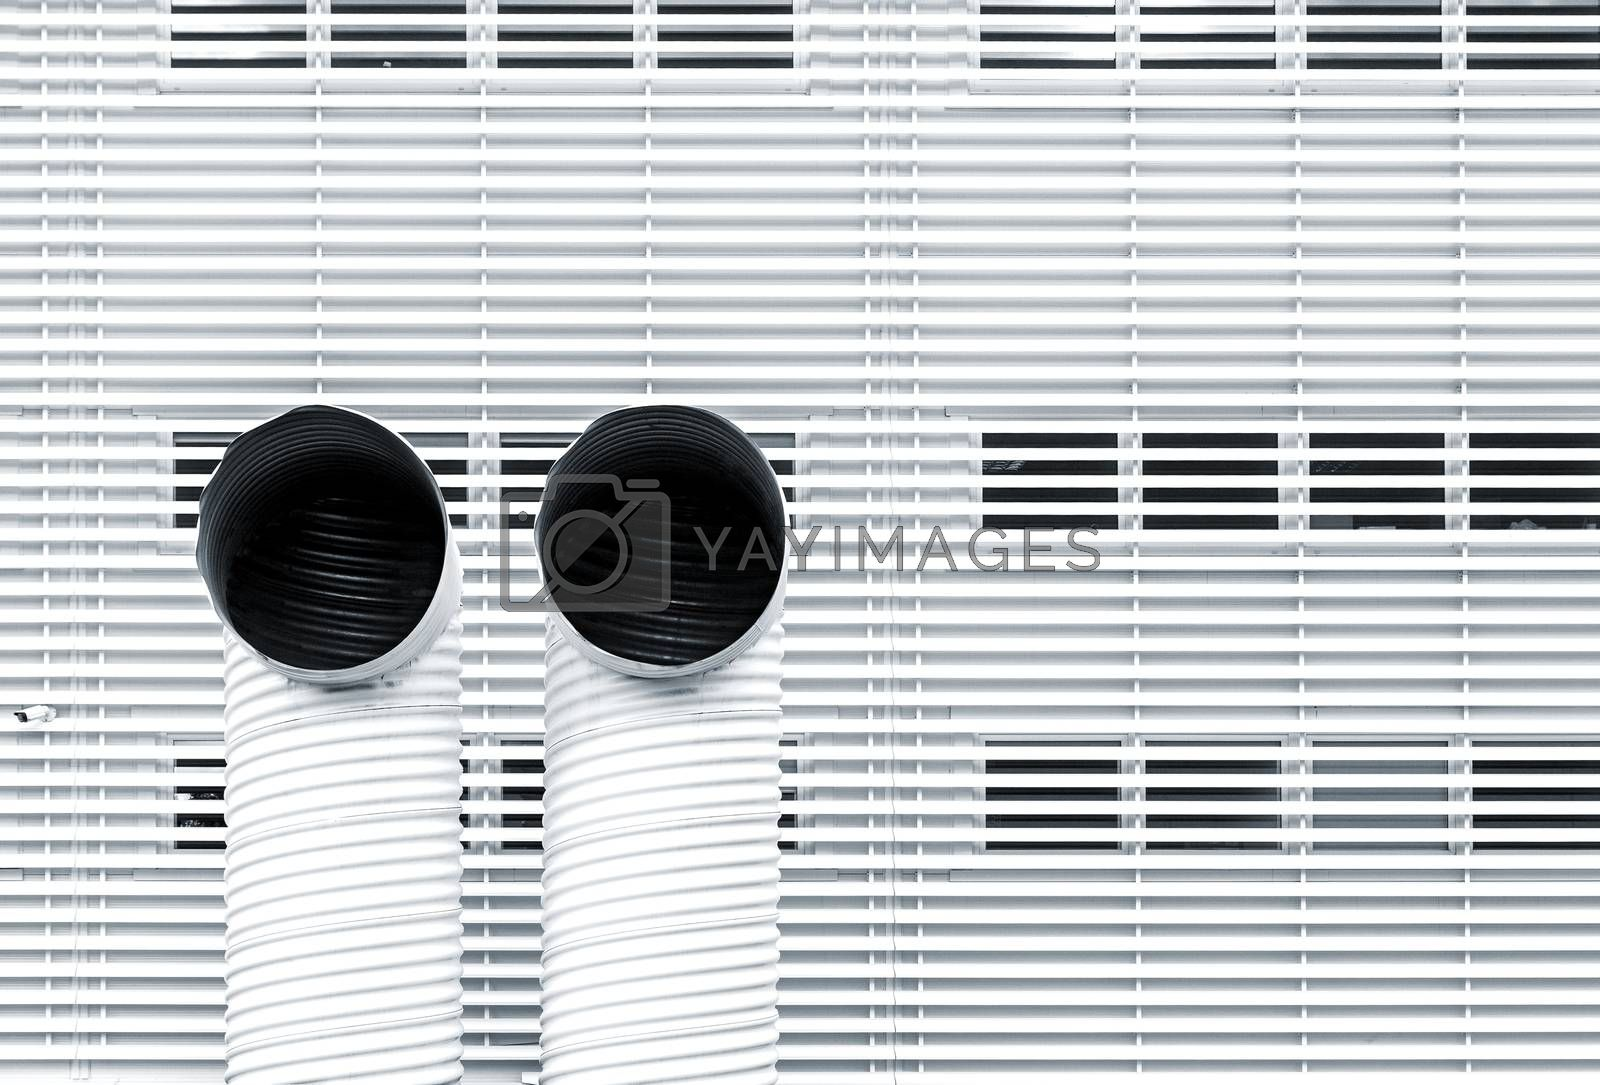 Abstract architecture picture with two ventilation pipes against striped metal facade